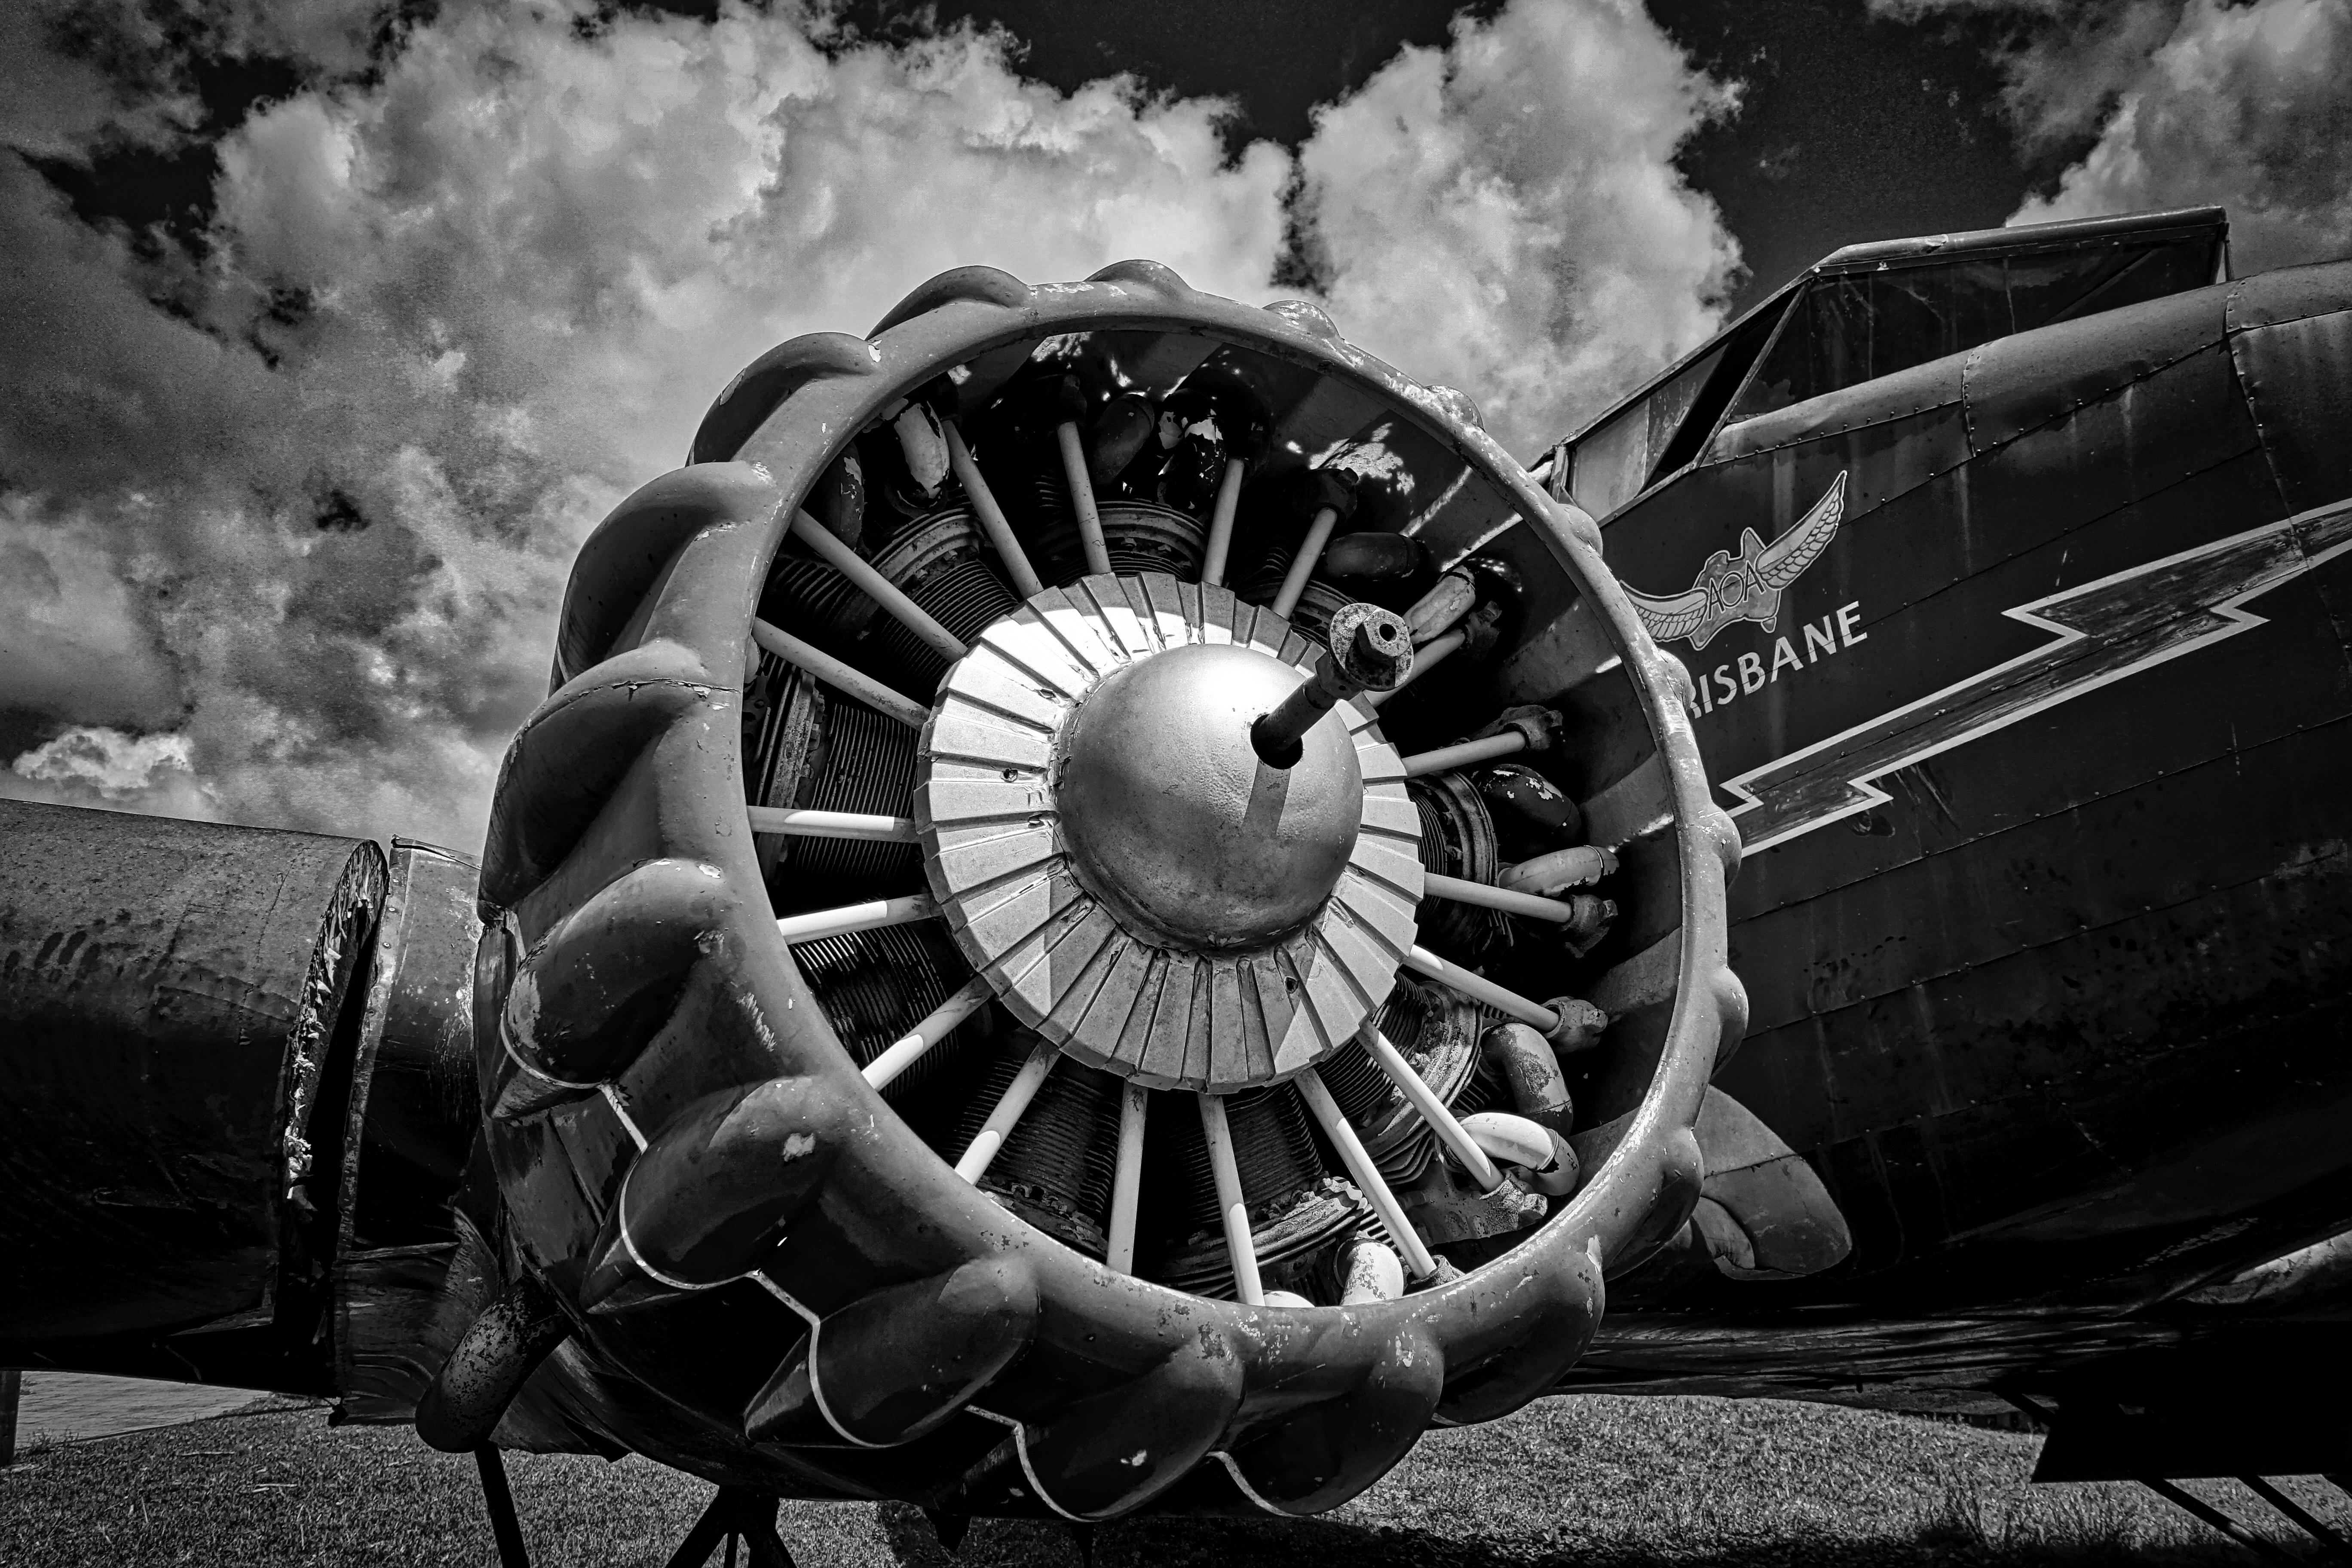 Aircraft Engine Wallpapers Top Free Aircraft Engine Backgrounds Wallpaperaccess